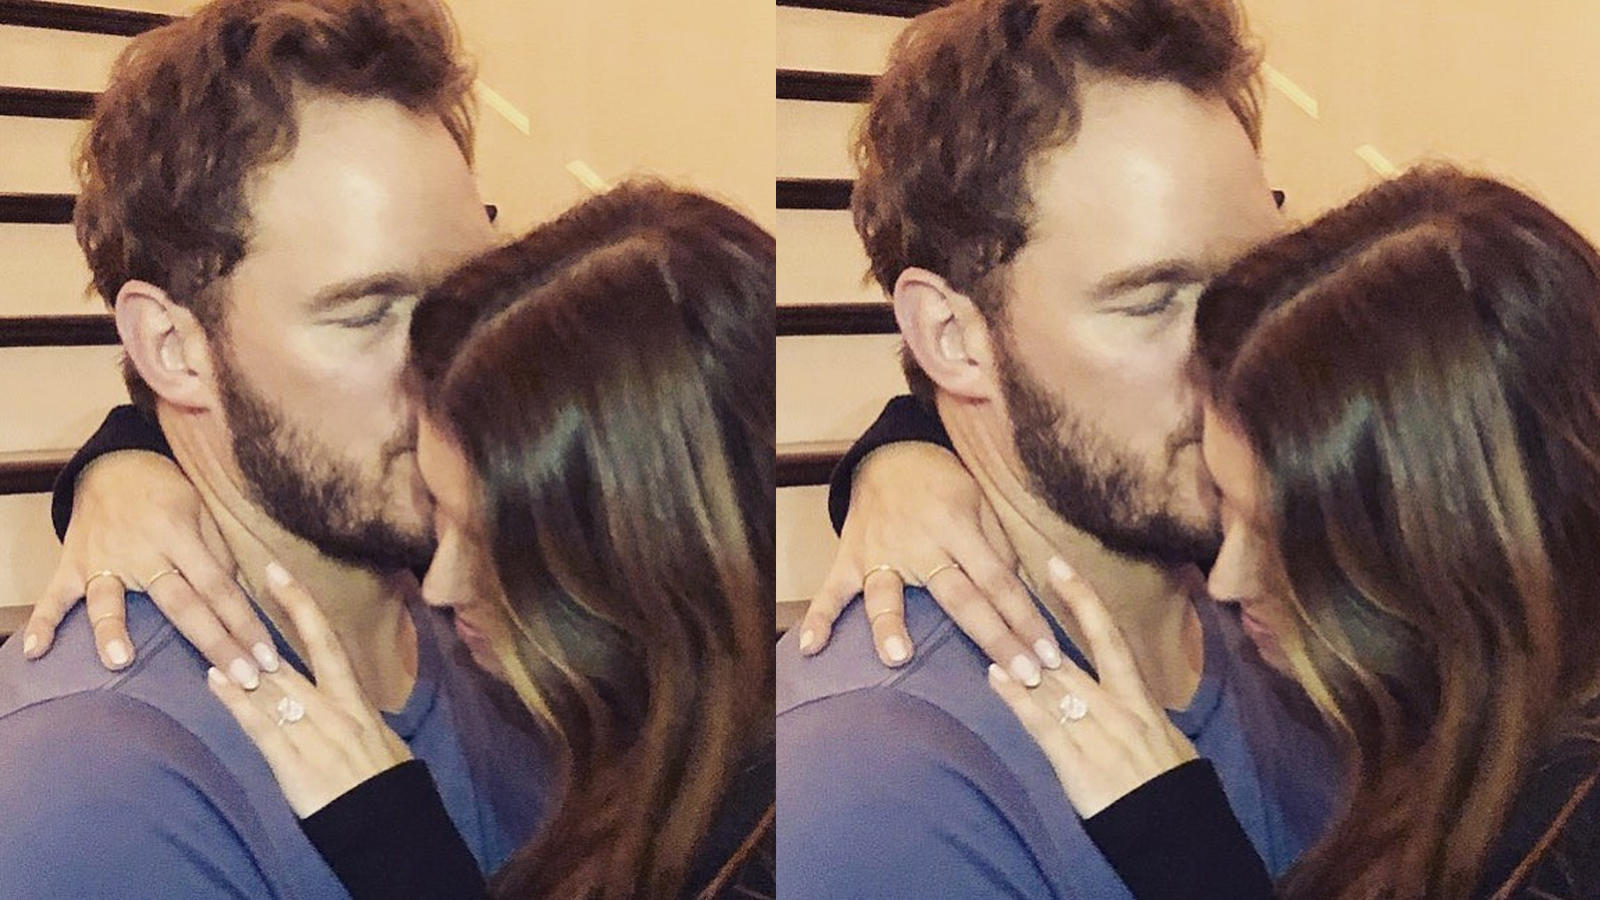 Chris Pratt announces engagement with Katherine Schwarzenegger